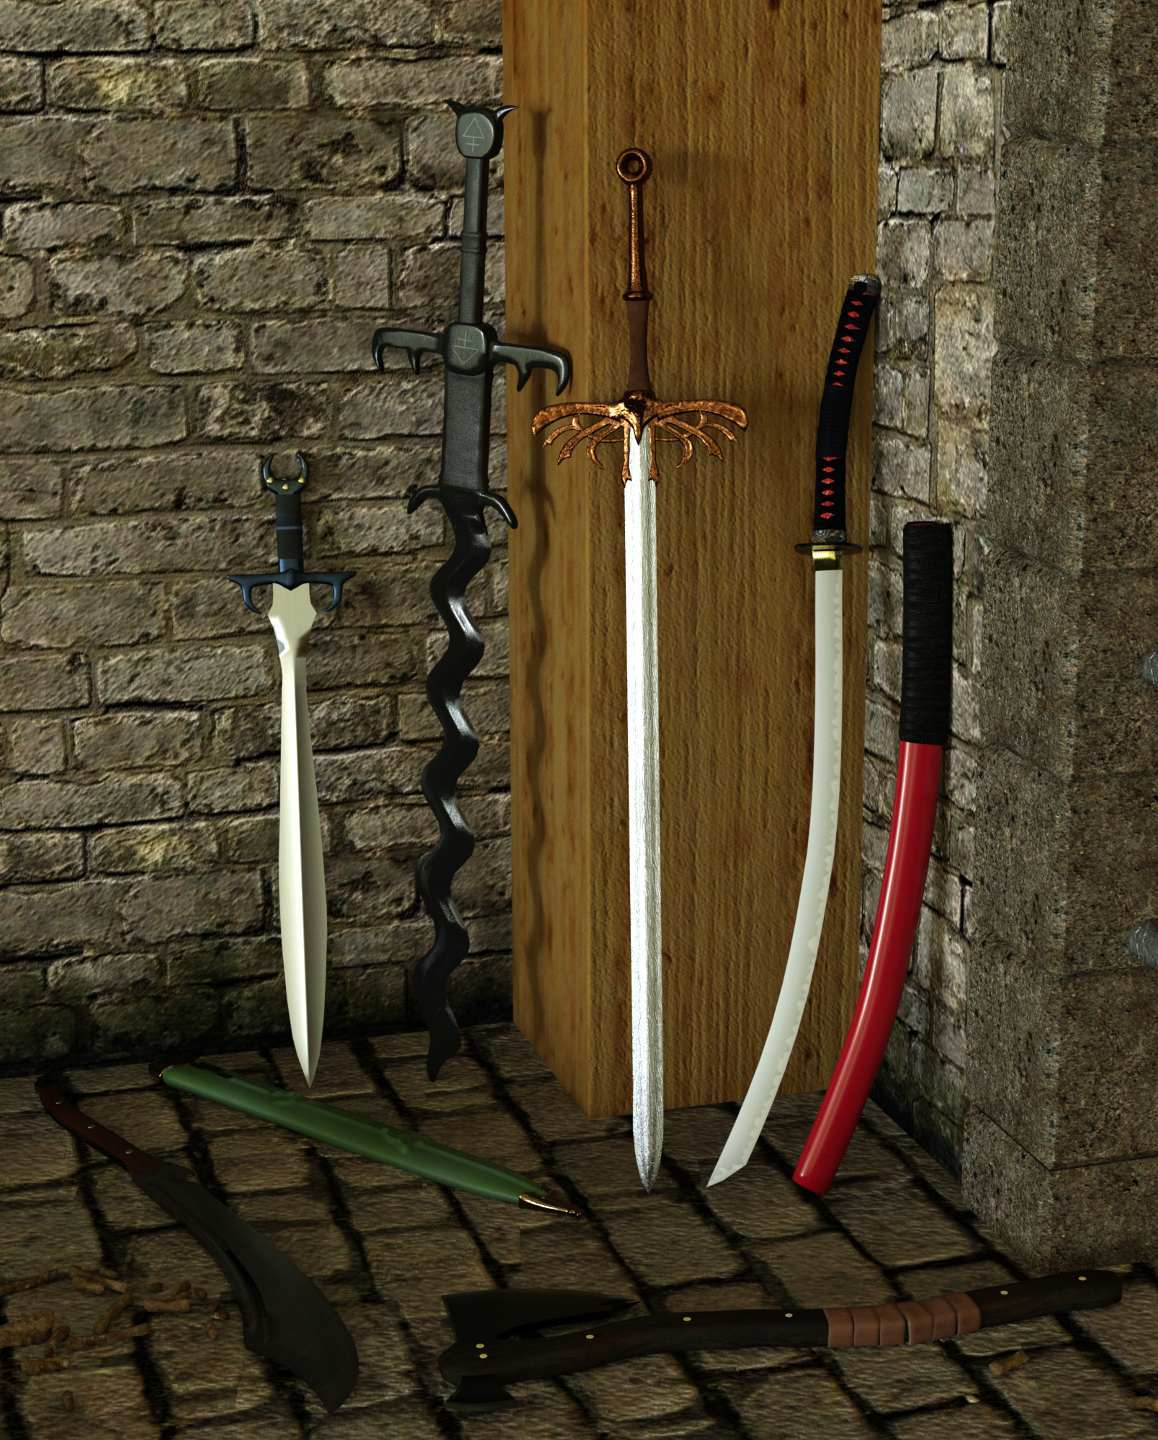 Fantasy Weapon Set One for Genesis 8 by Deacon215